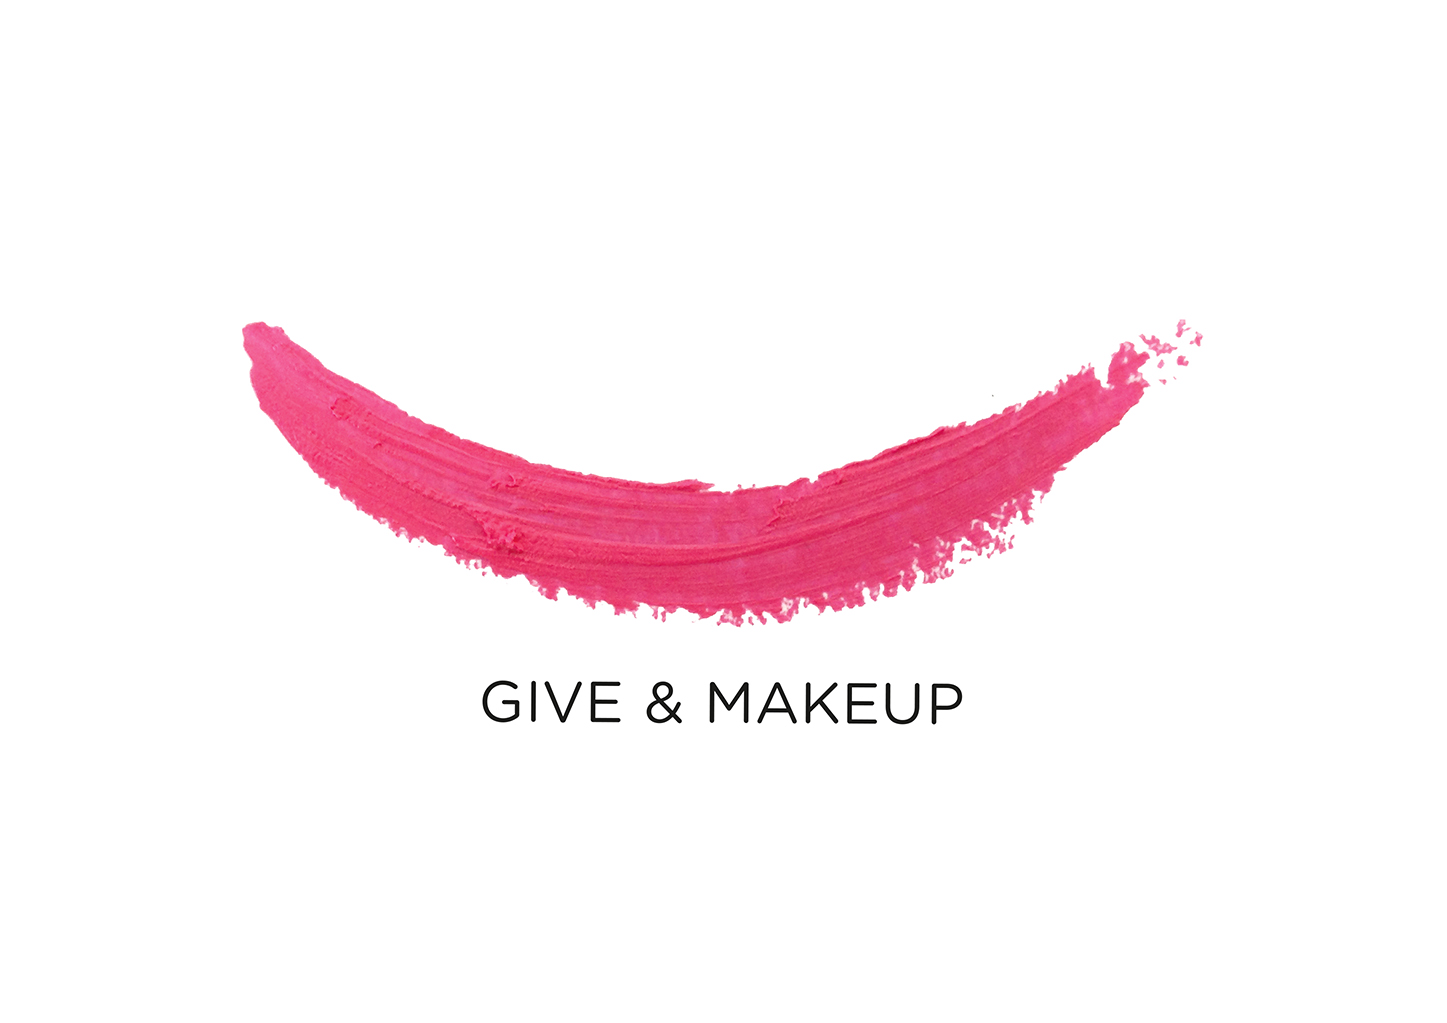 2f92d6f109 Give and Makeup is a non-profit initiative whose sole purpose is to get  everyday essentials into the hands of women and children who need them the  most.